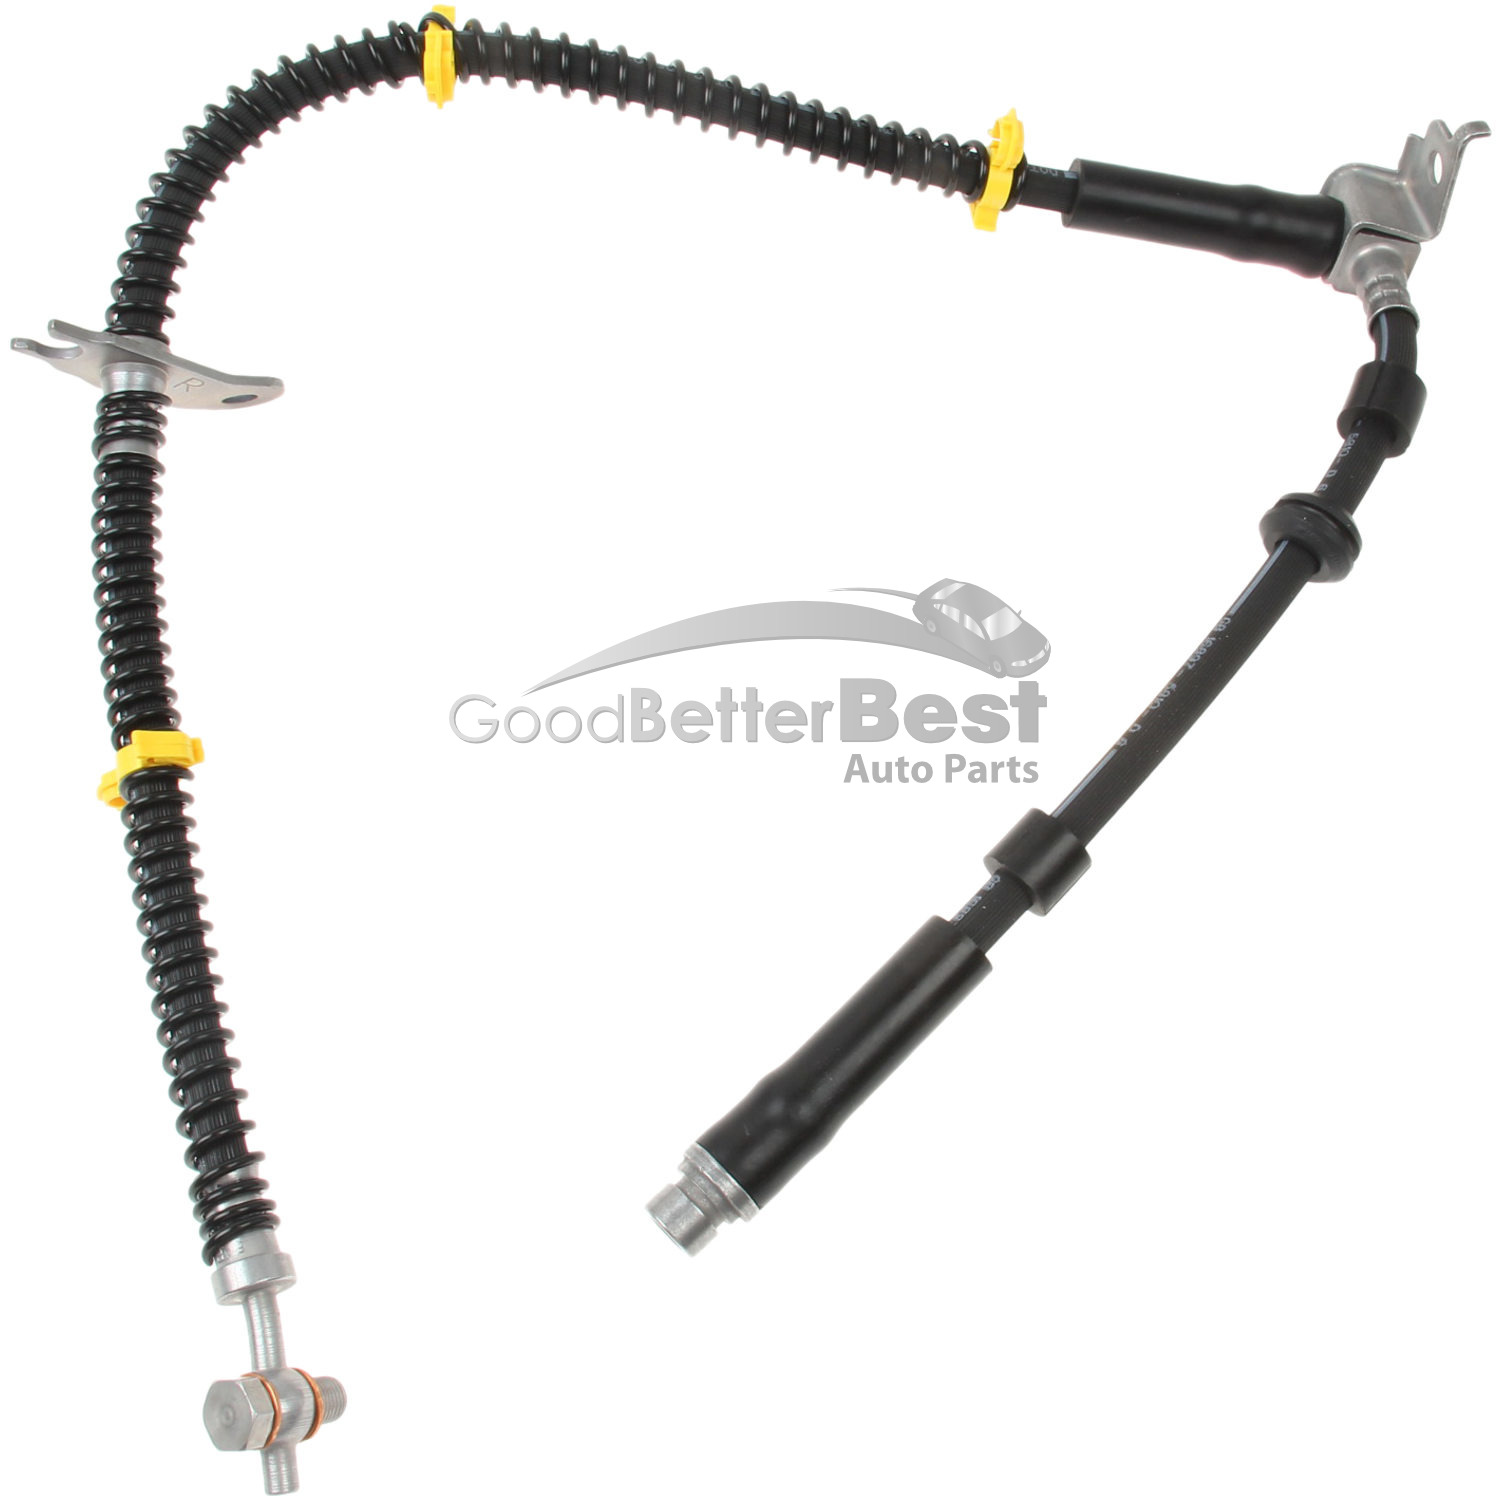 One New Eurospare Brake Hydraulic Hose Front Right